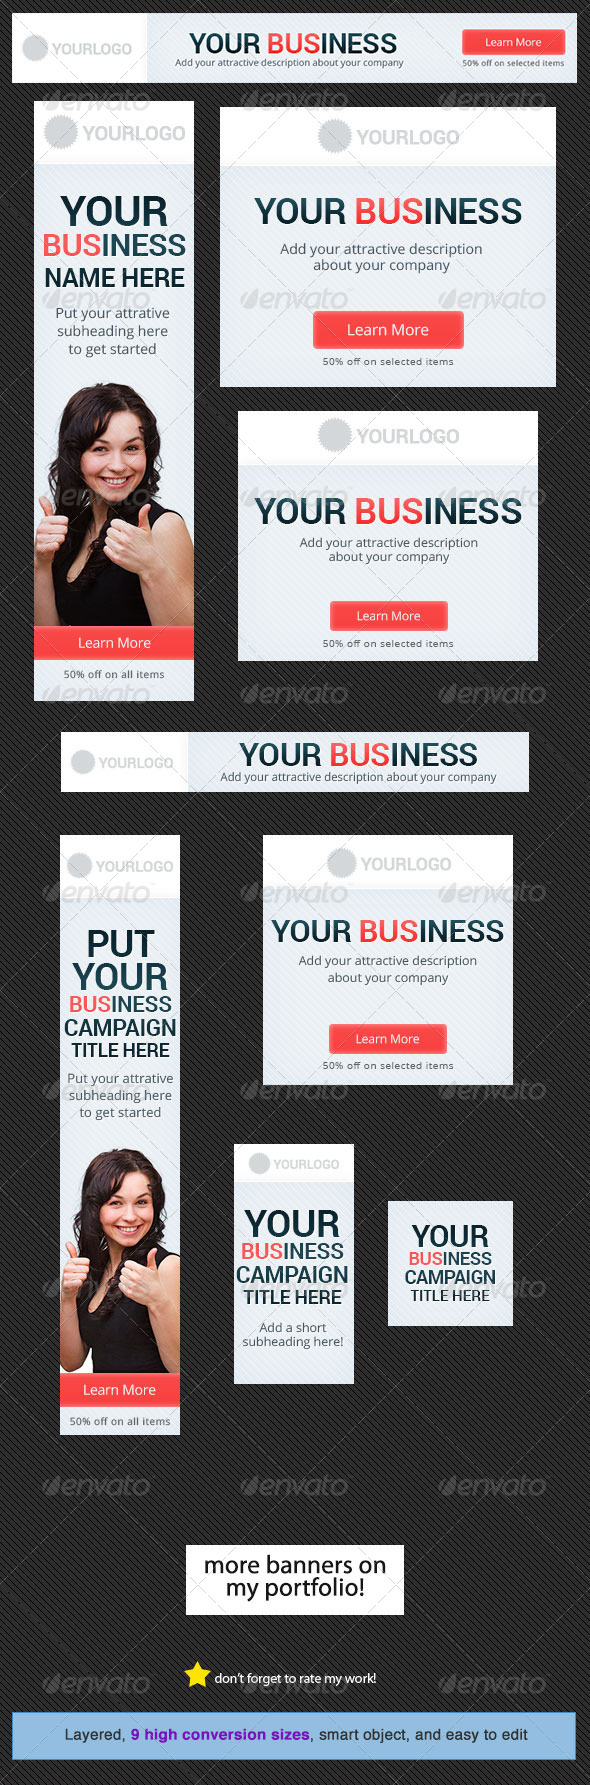 GraphicRiver Business Banner Design Template 2 5178907